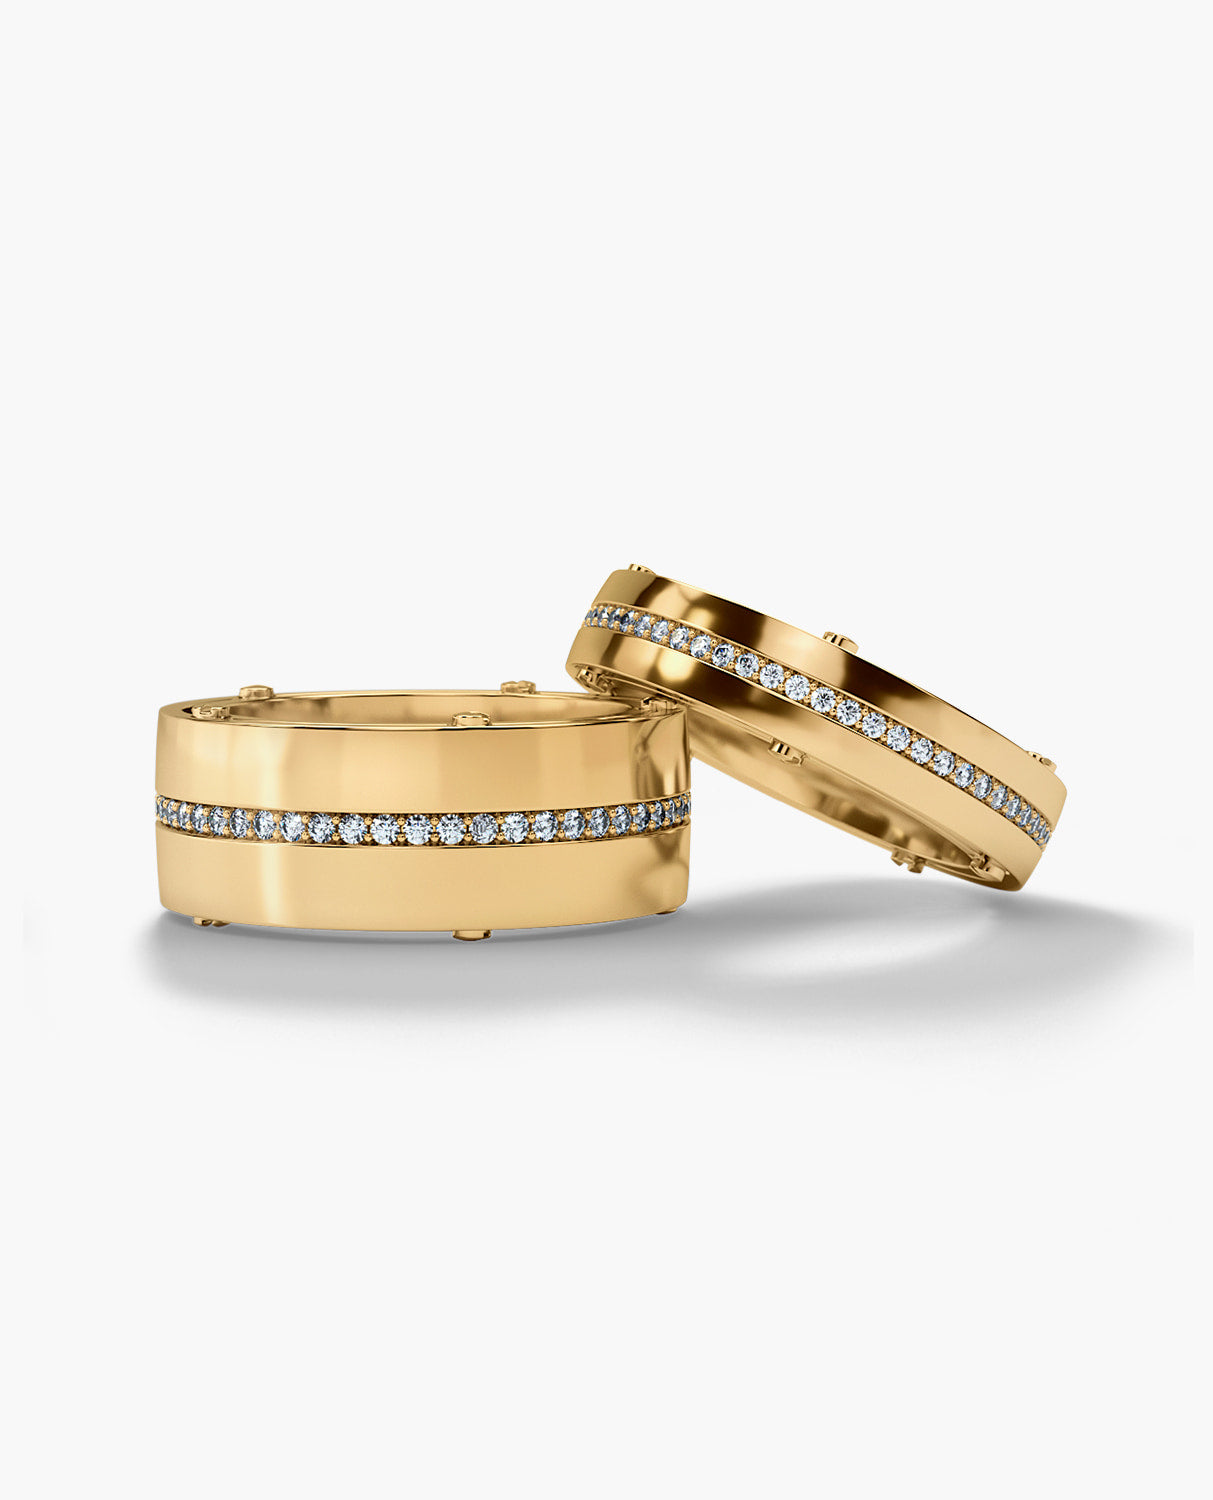 FRANKLIN Gold Matching Diamond Wedding Band Set